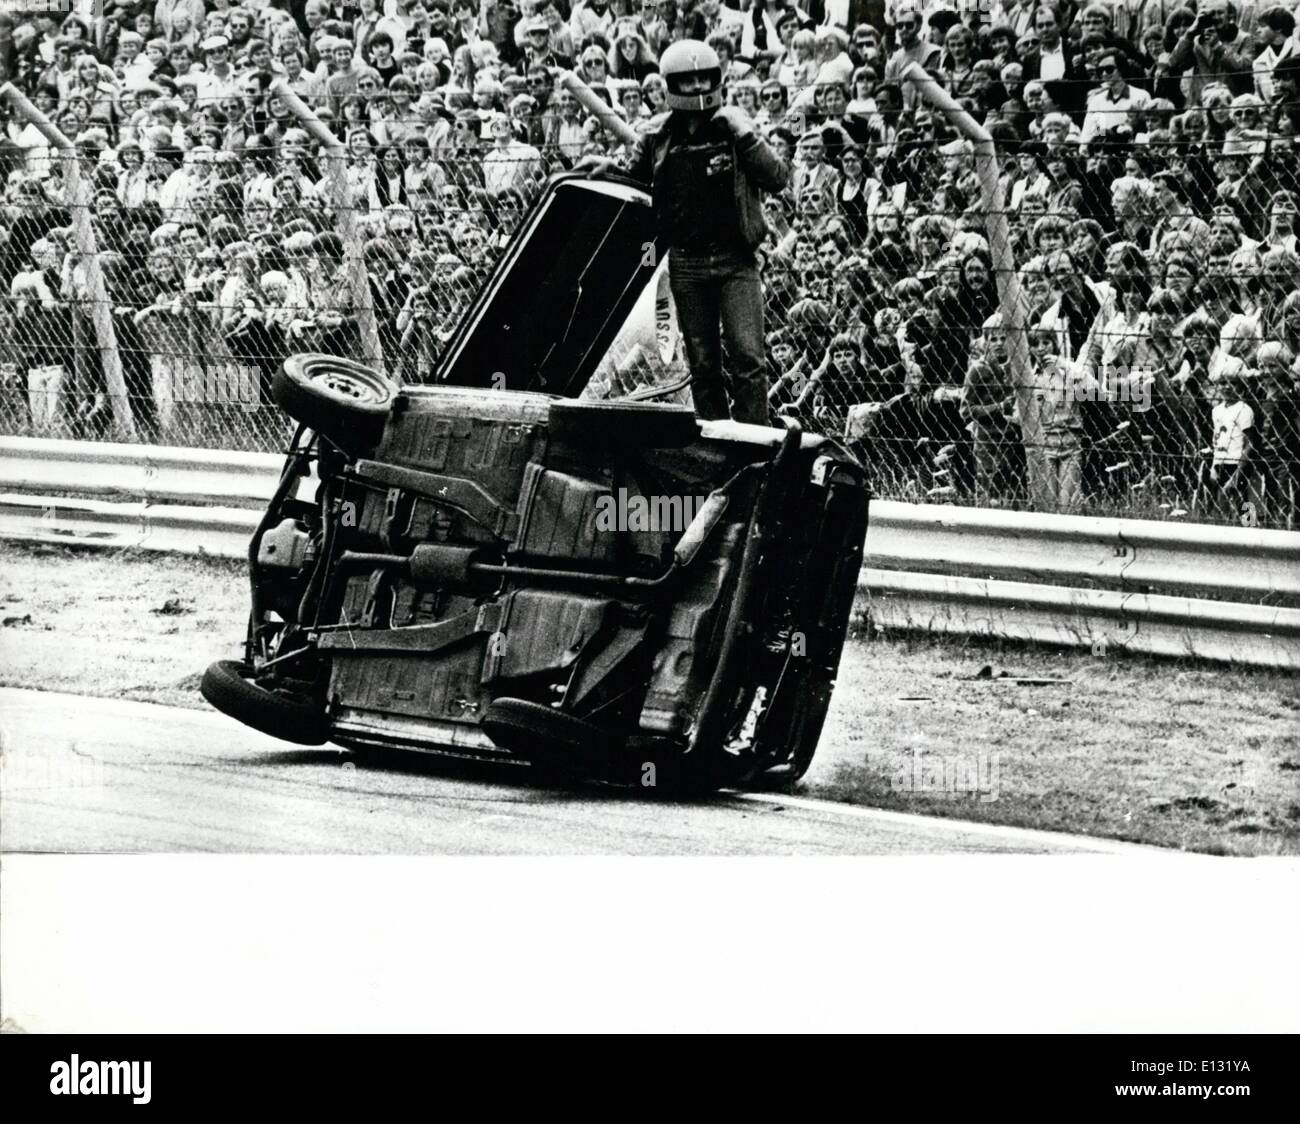 Feb. 26, 2012 - A Draft Sort Of Race: To go backwards, usually doesn't get you very far, but drivers of these - Stock Image